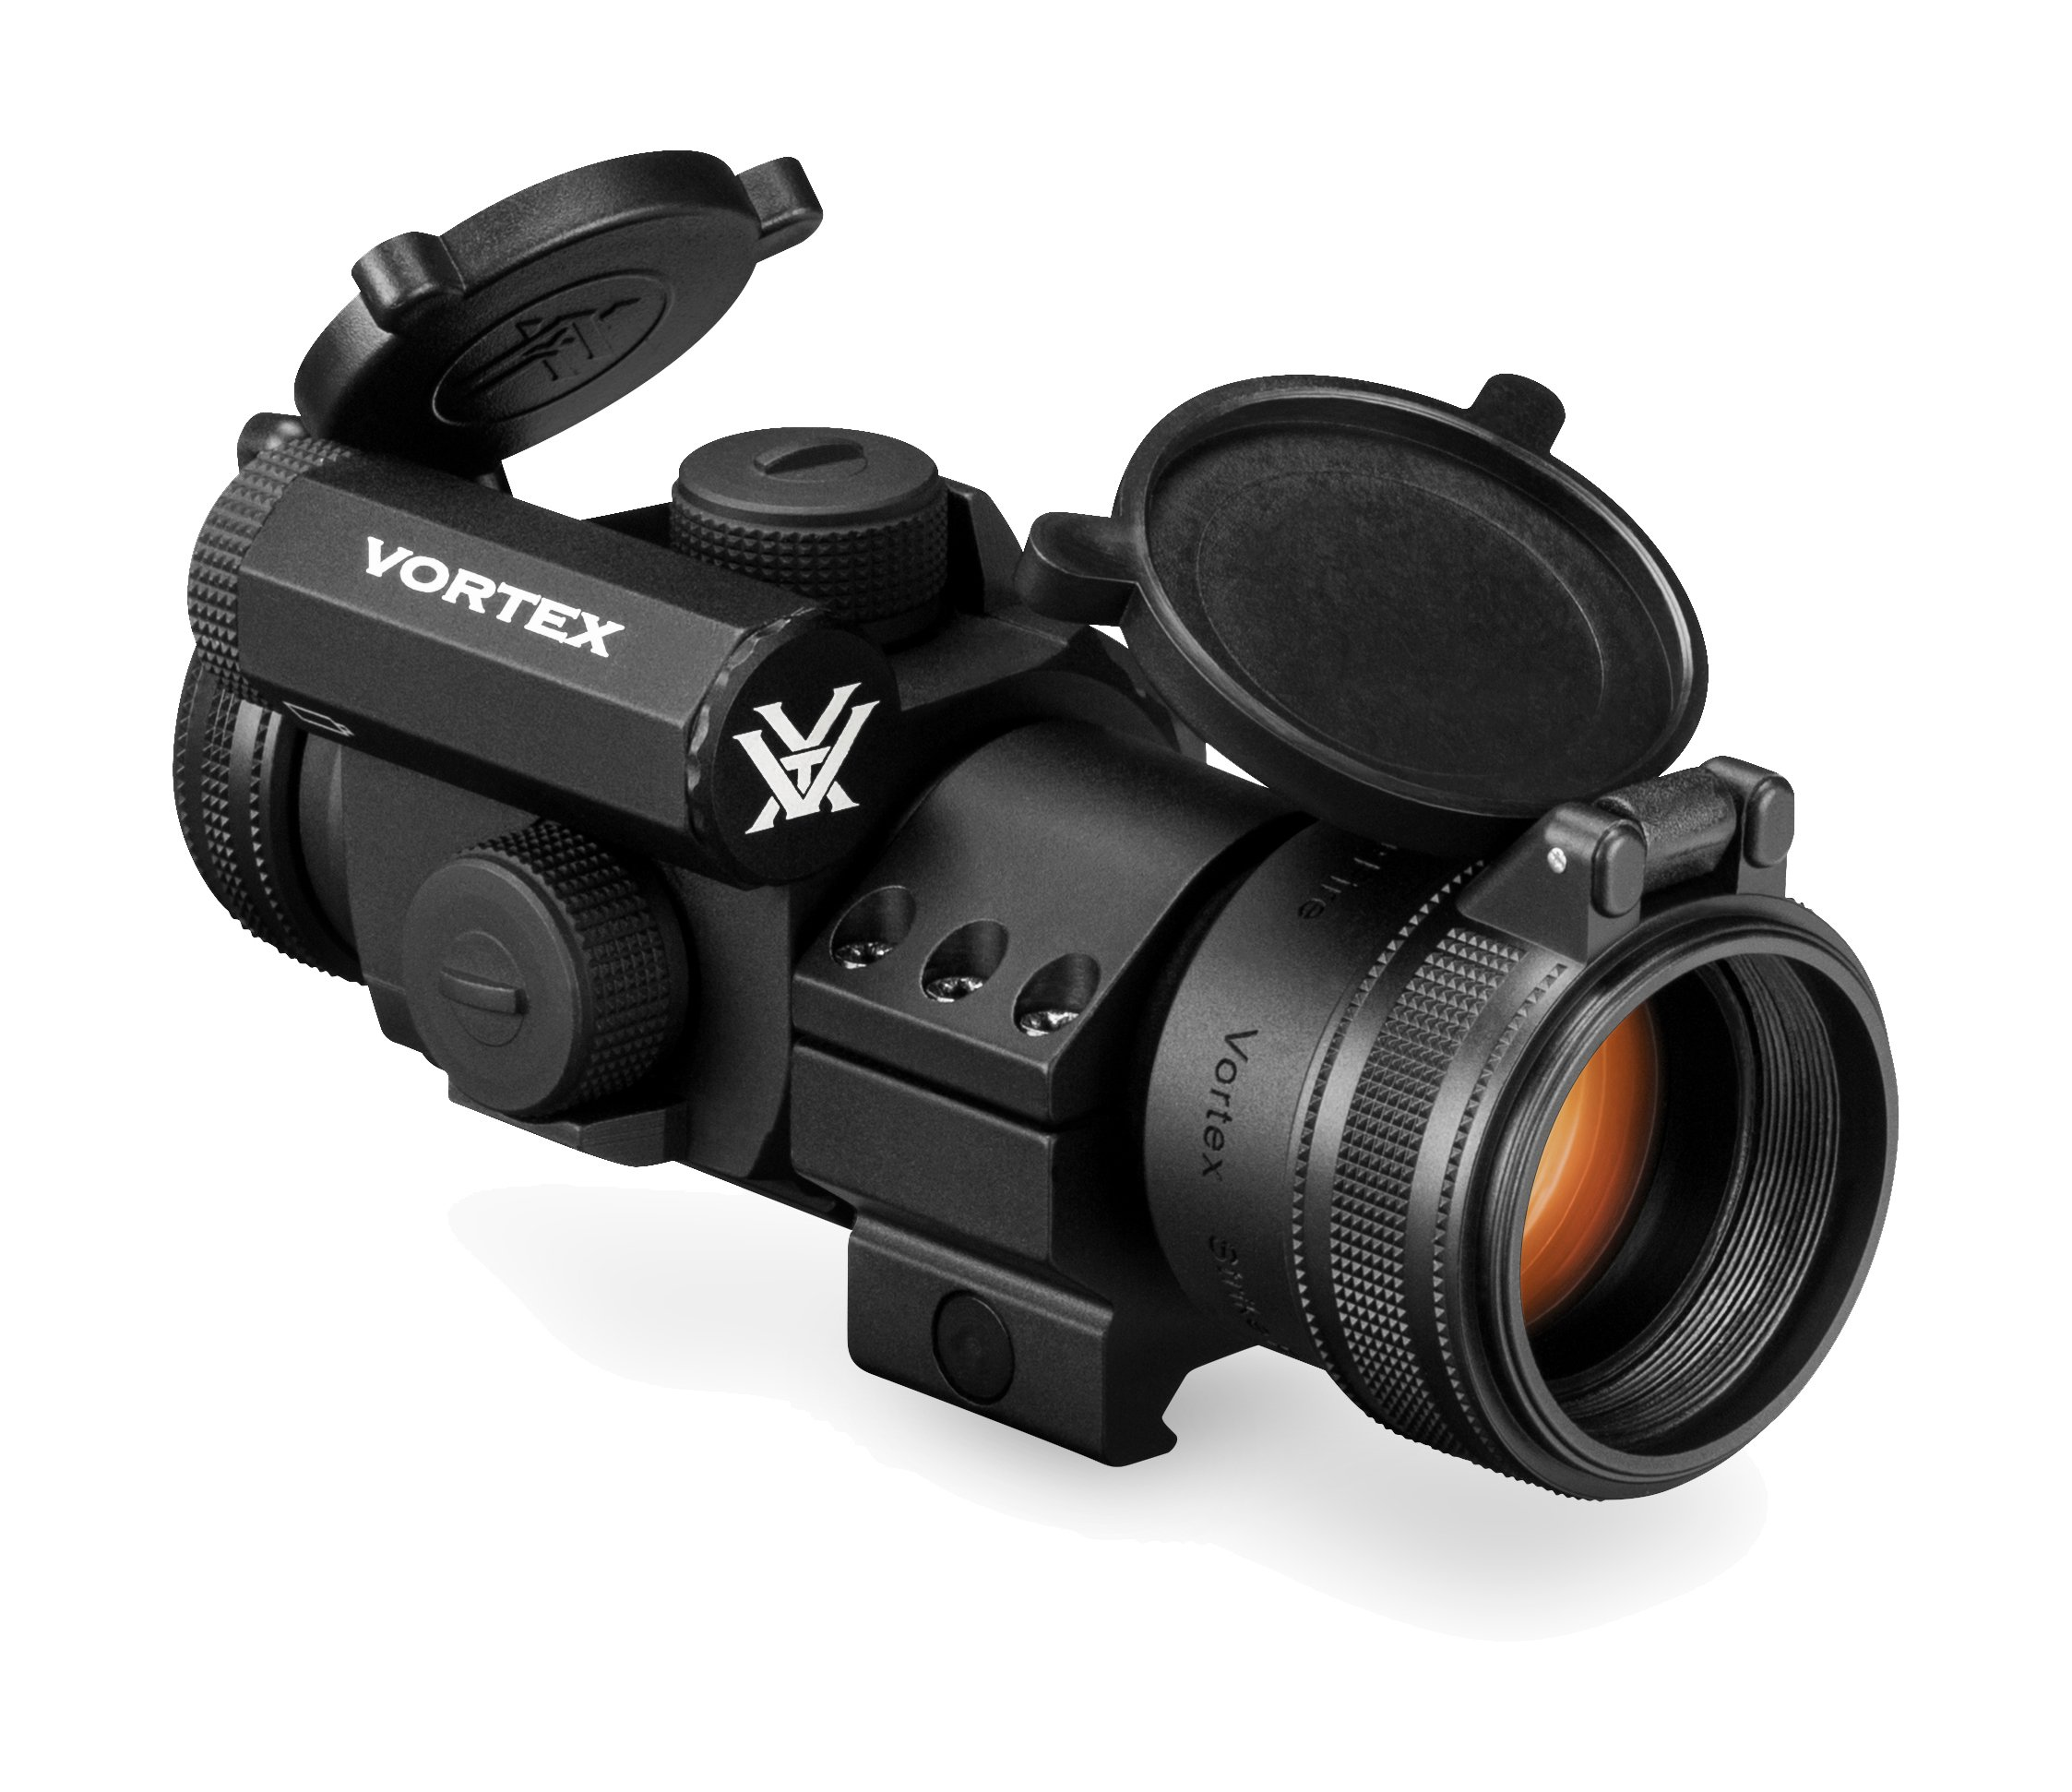 Vortex Optics StrikeFire 2 Red/Green Dot Sight with Cantilever Mount (SF-RG-501)